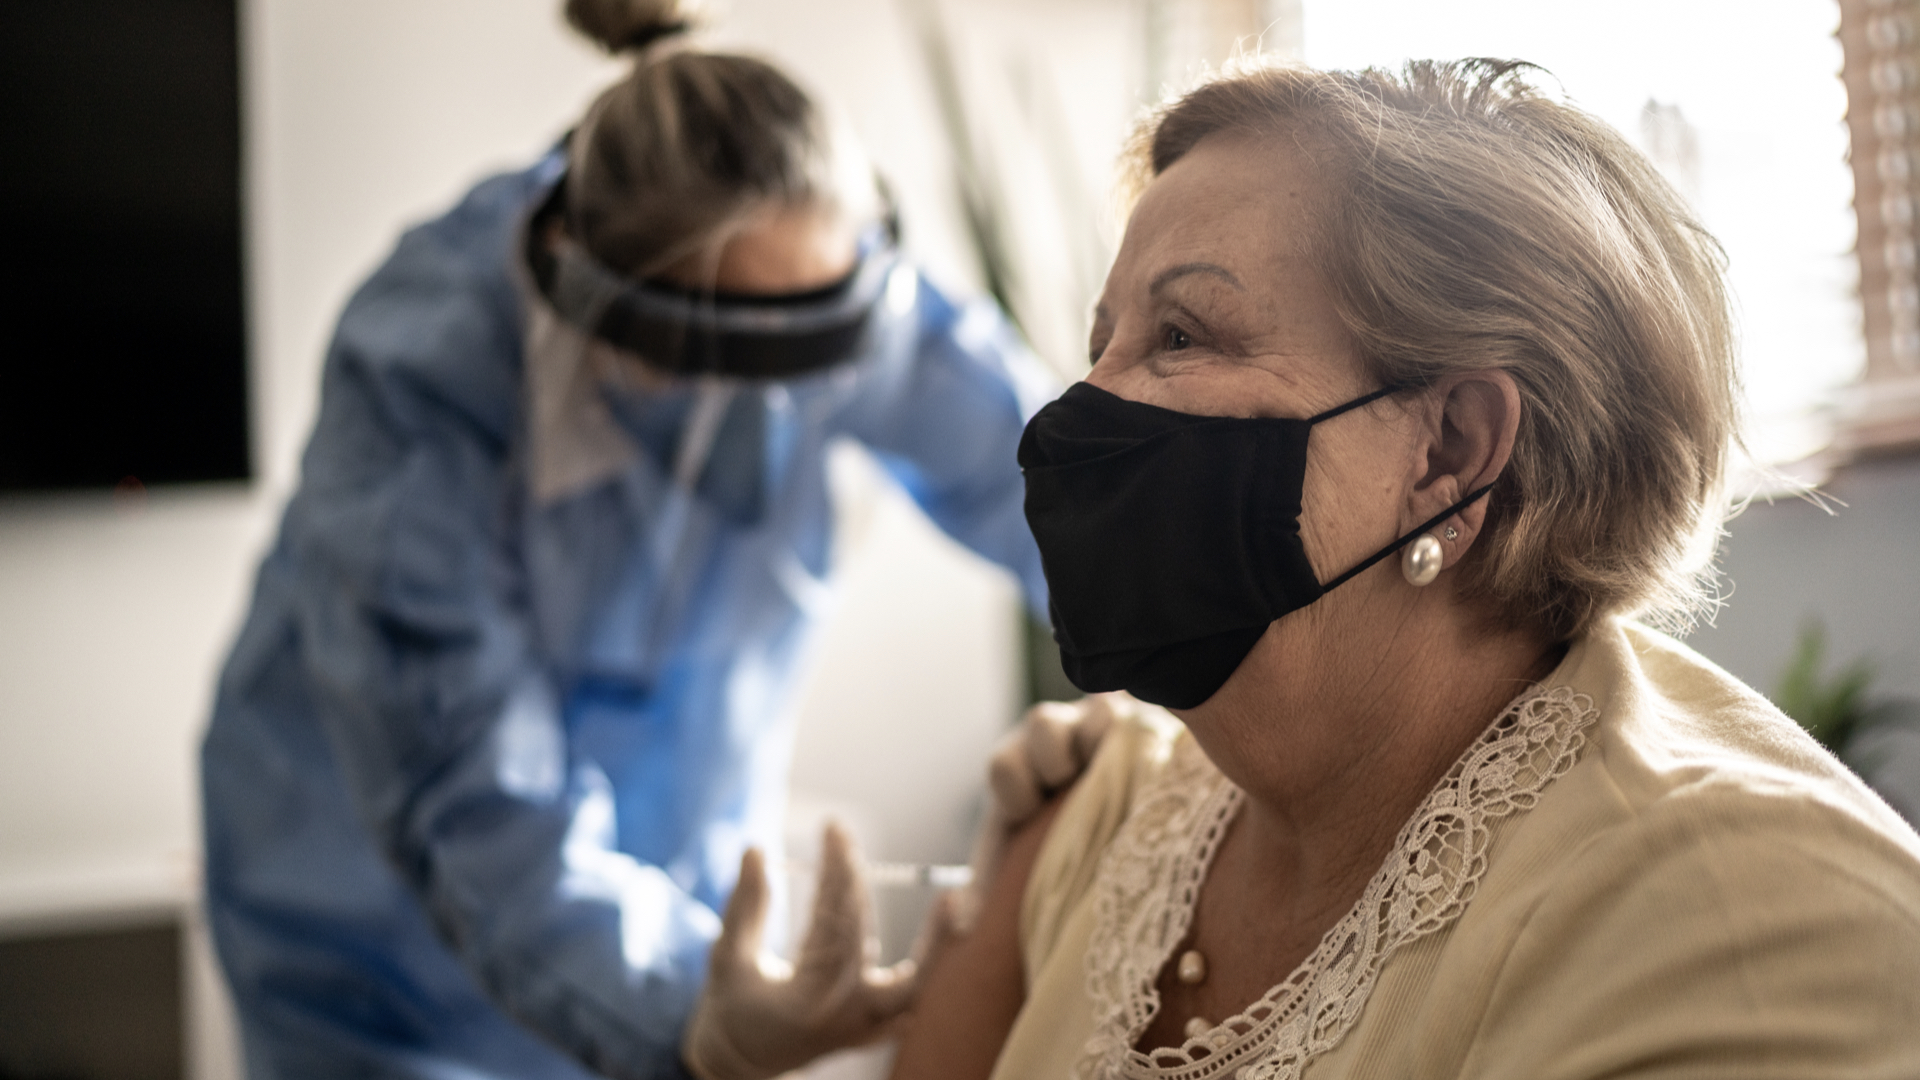 Photo of a woman getting a COVID-19 vaccine